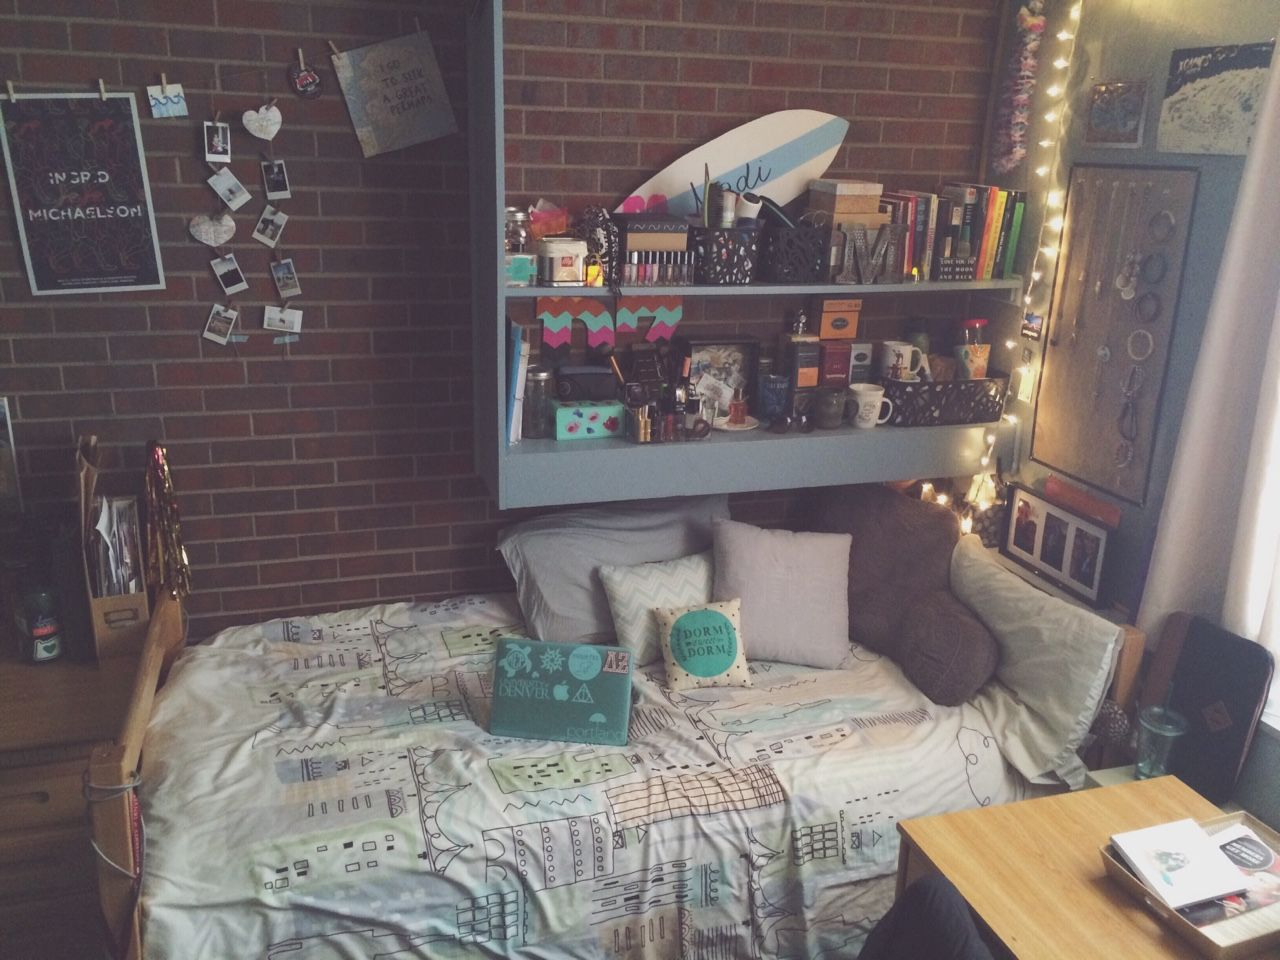 Need Ideas For Decorating Your College Dorm Room Here Are 20 Bedrooms And Rooms Inspiration On Having The Coolest Campus